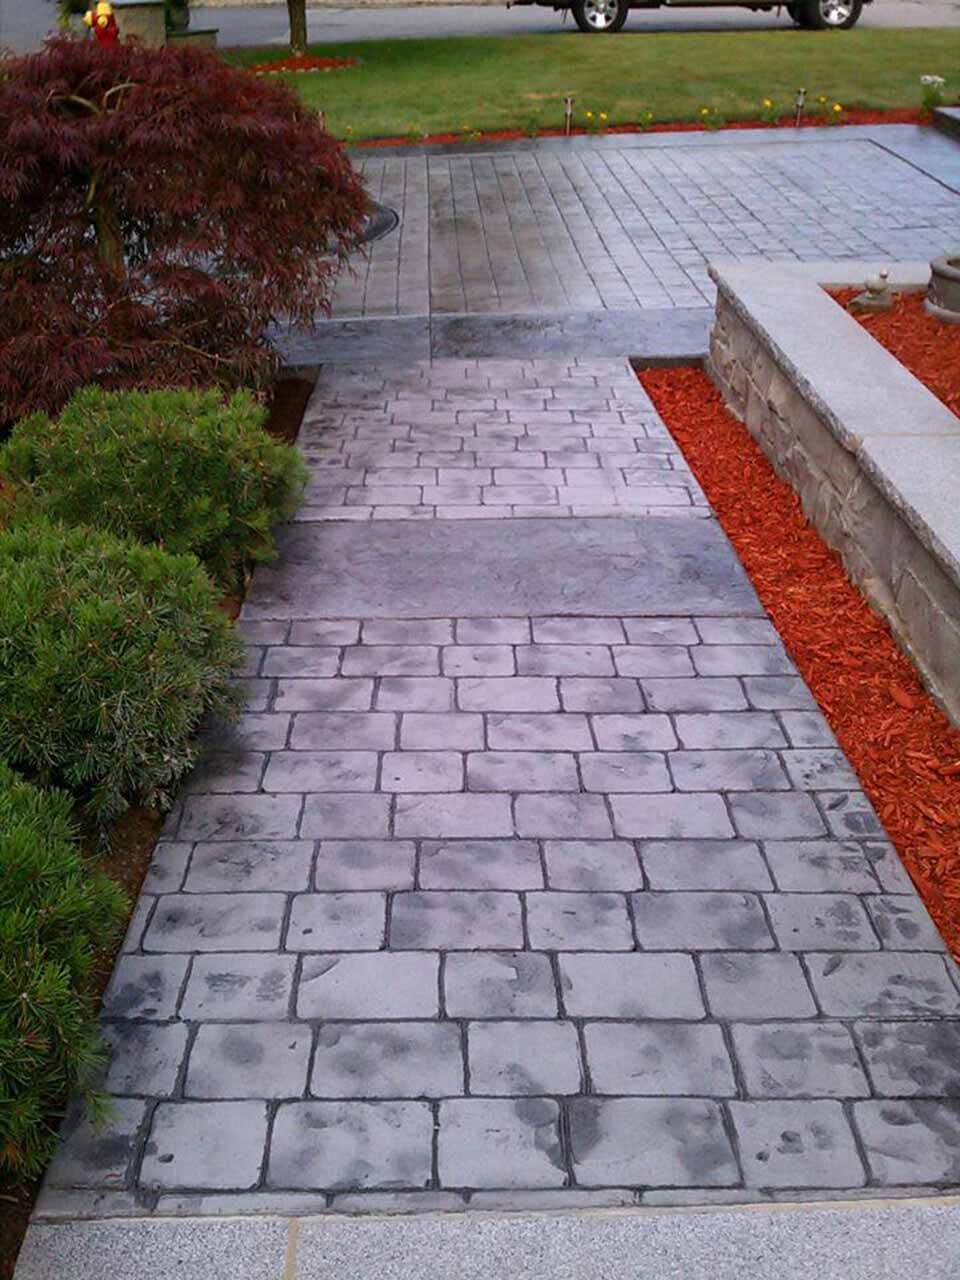 Images Of Stamped Concrete Patios: Contractors, Pictures, Designs